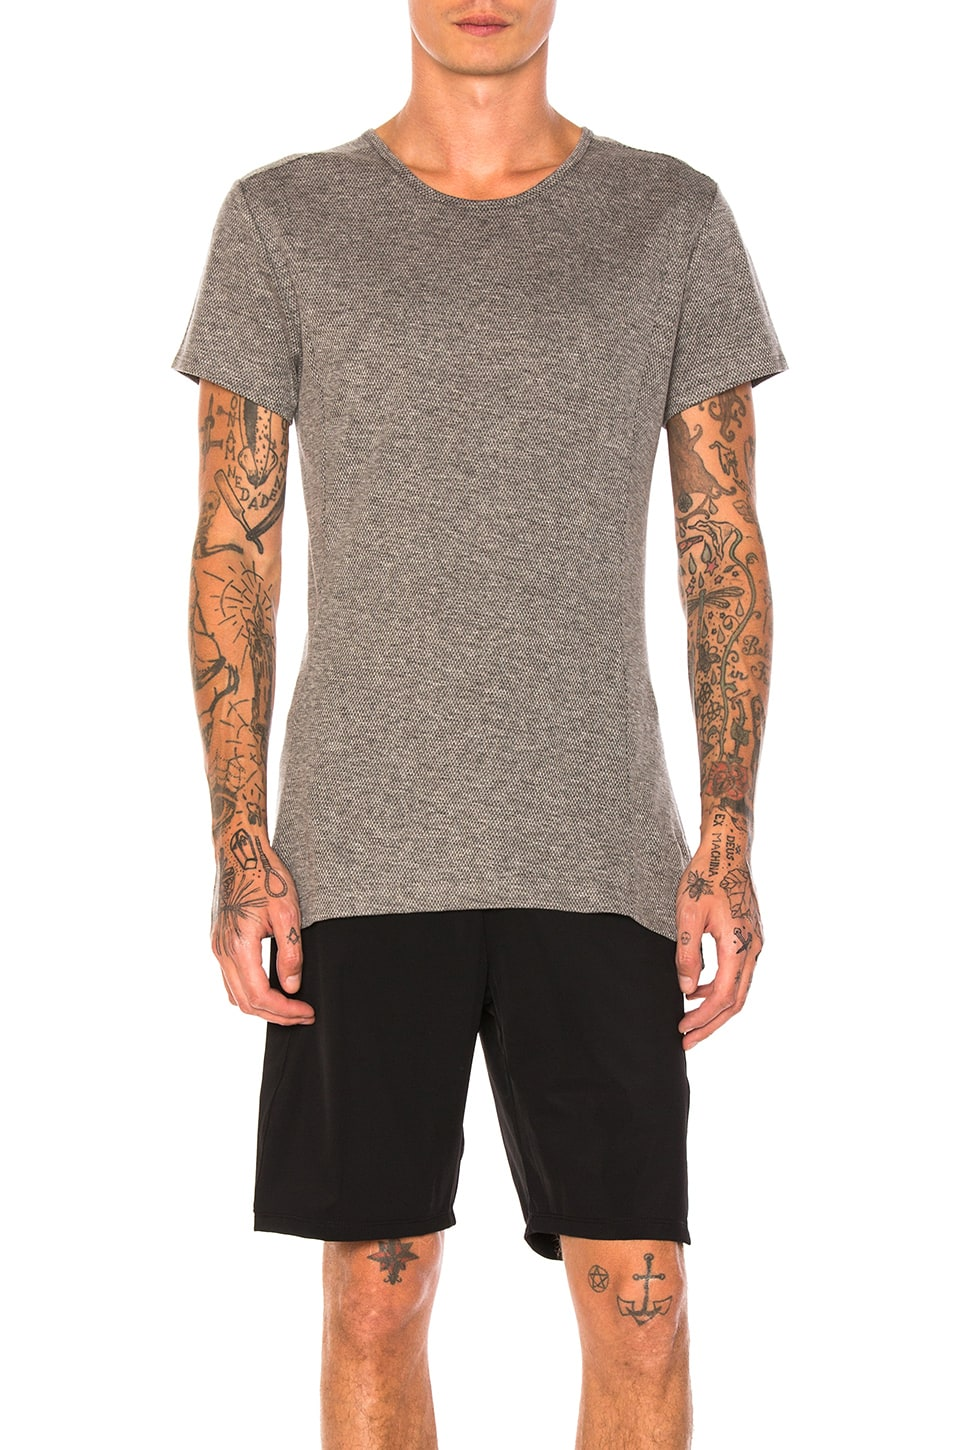 Wool/Cotton Blend Tee by Athletic Propulsion Labs: APL